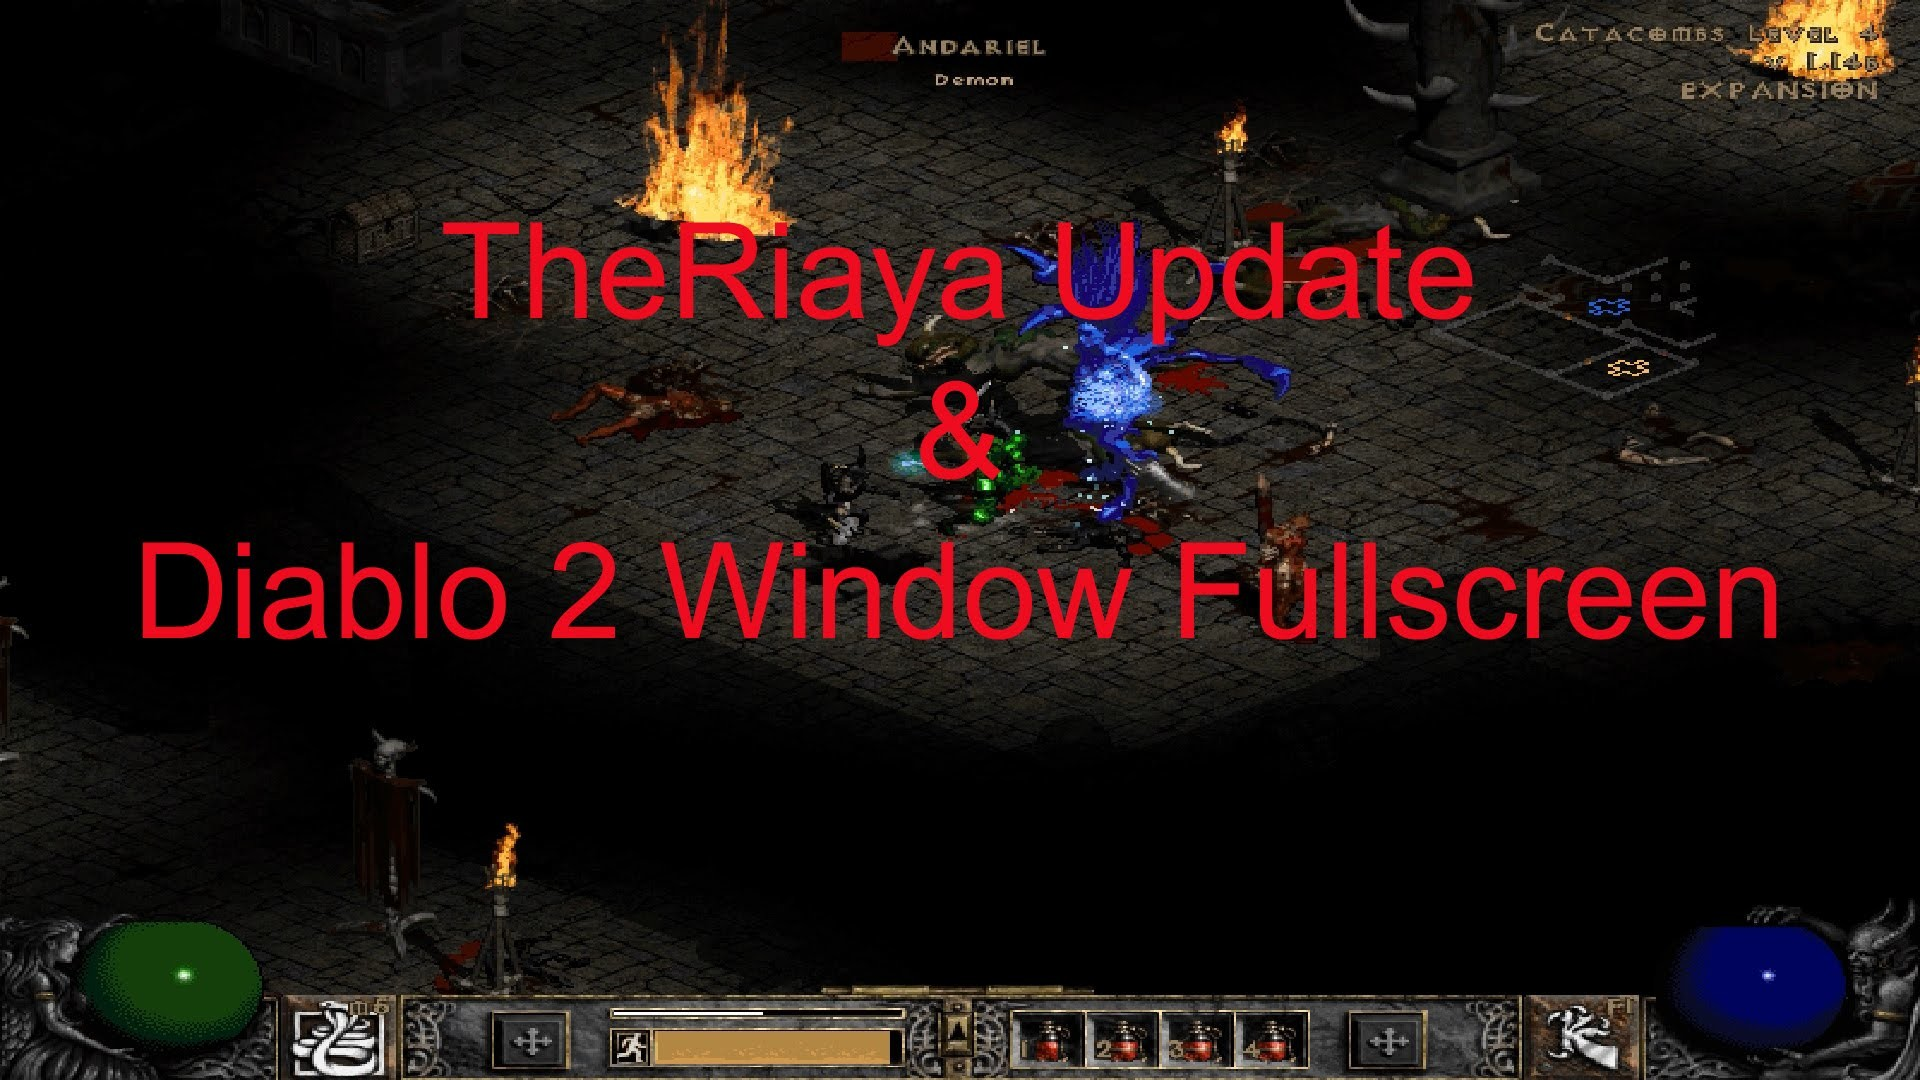 Res: 1920x1080, Update & Diablo II windowed fullscreen